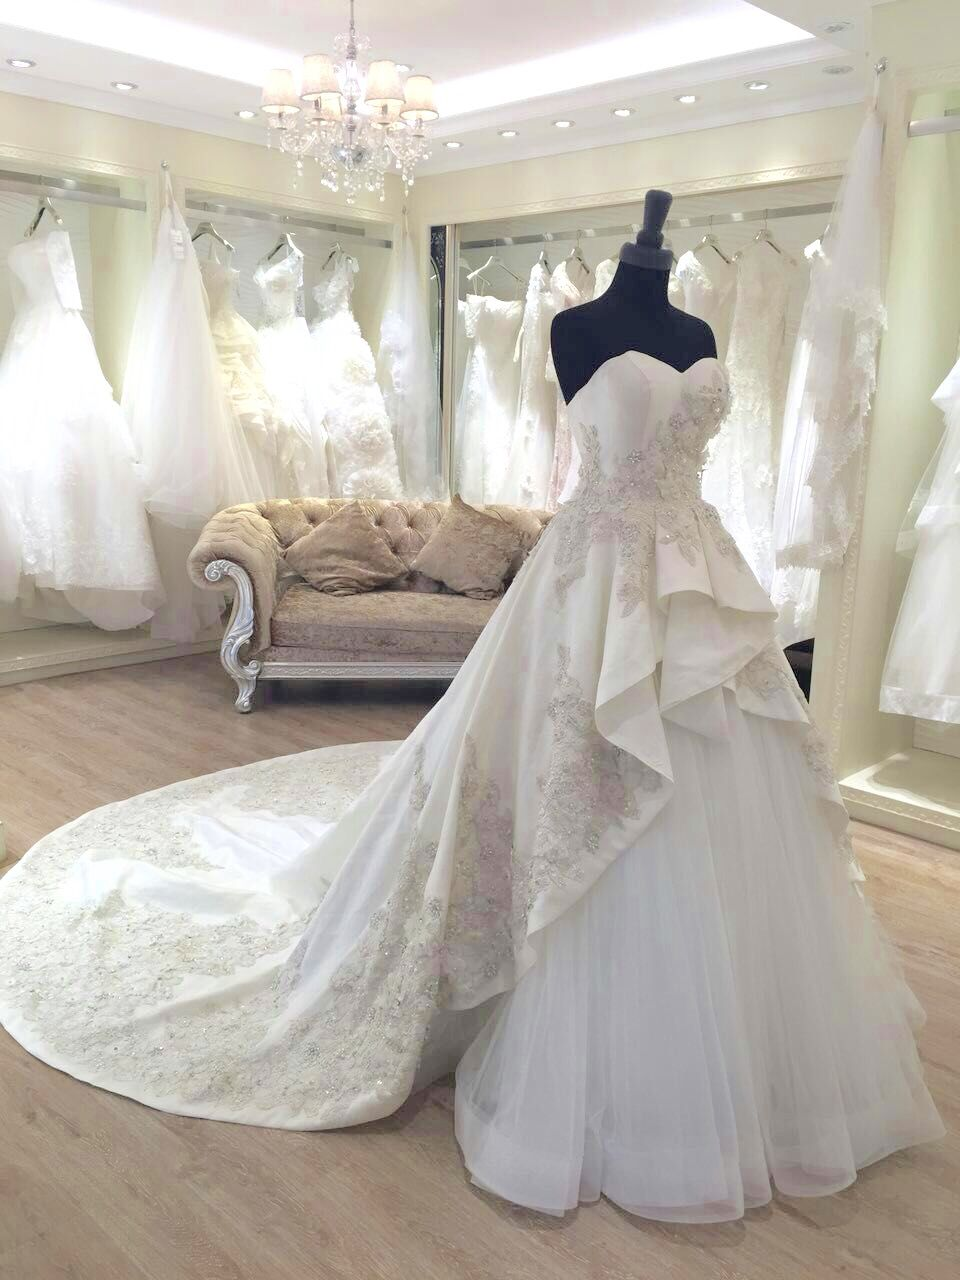 f5e668253d8 Wedding gown with silver details Event Planning